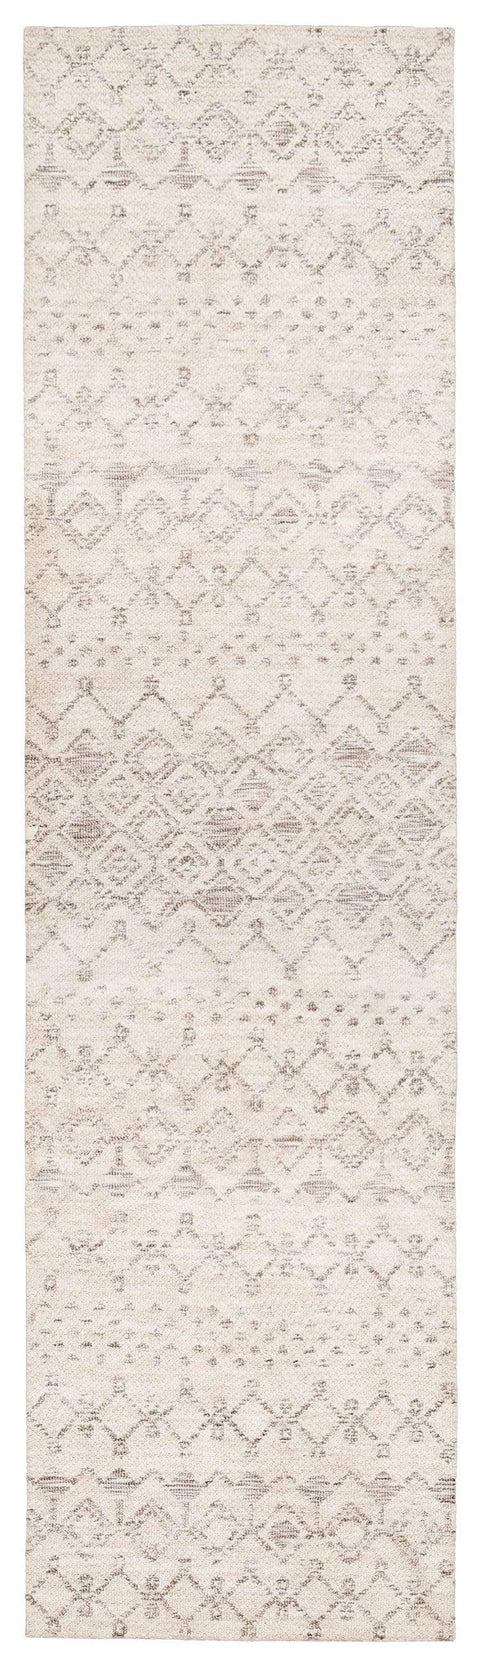 Harlow Ivory Cream and Brown Tribal Runner Rug